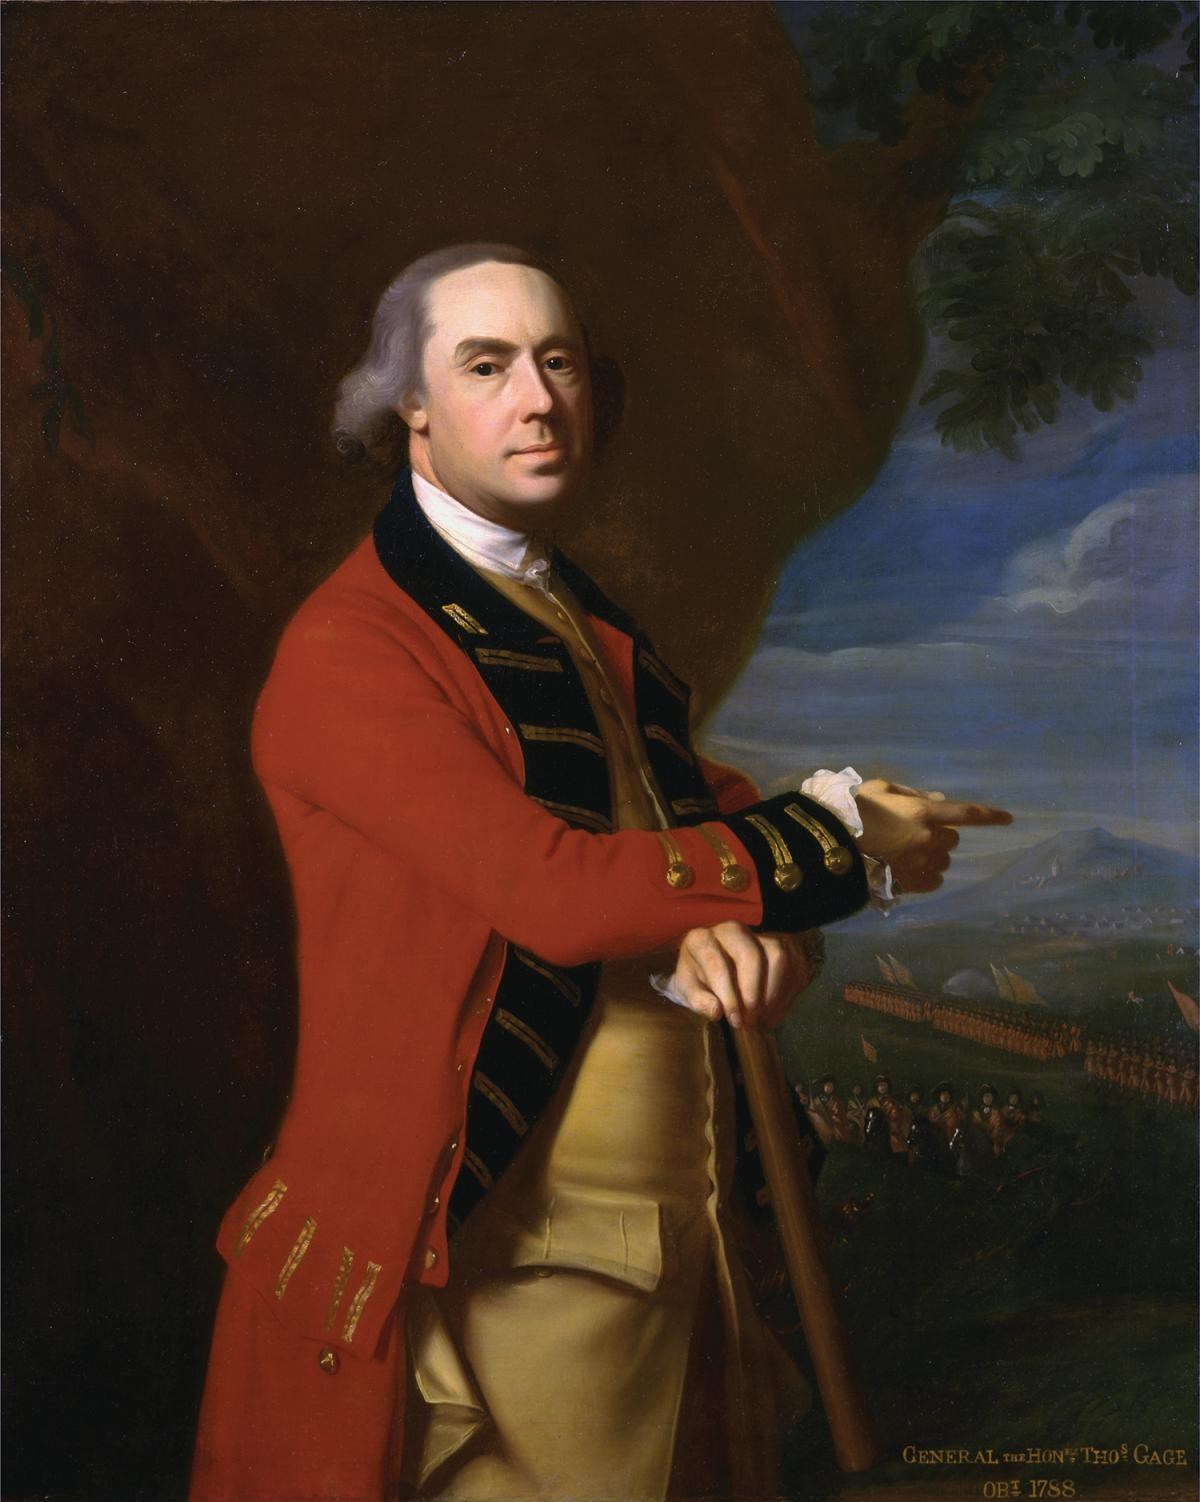 Portrait of Thomas Gage, wearing a British Army red coat, leaning on a walking stick